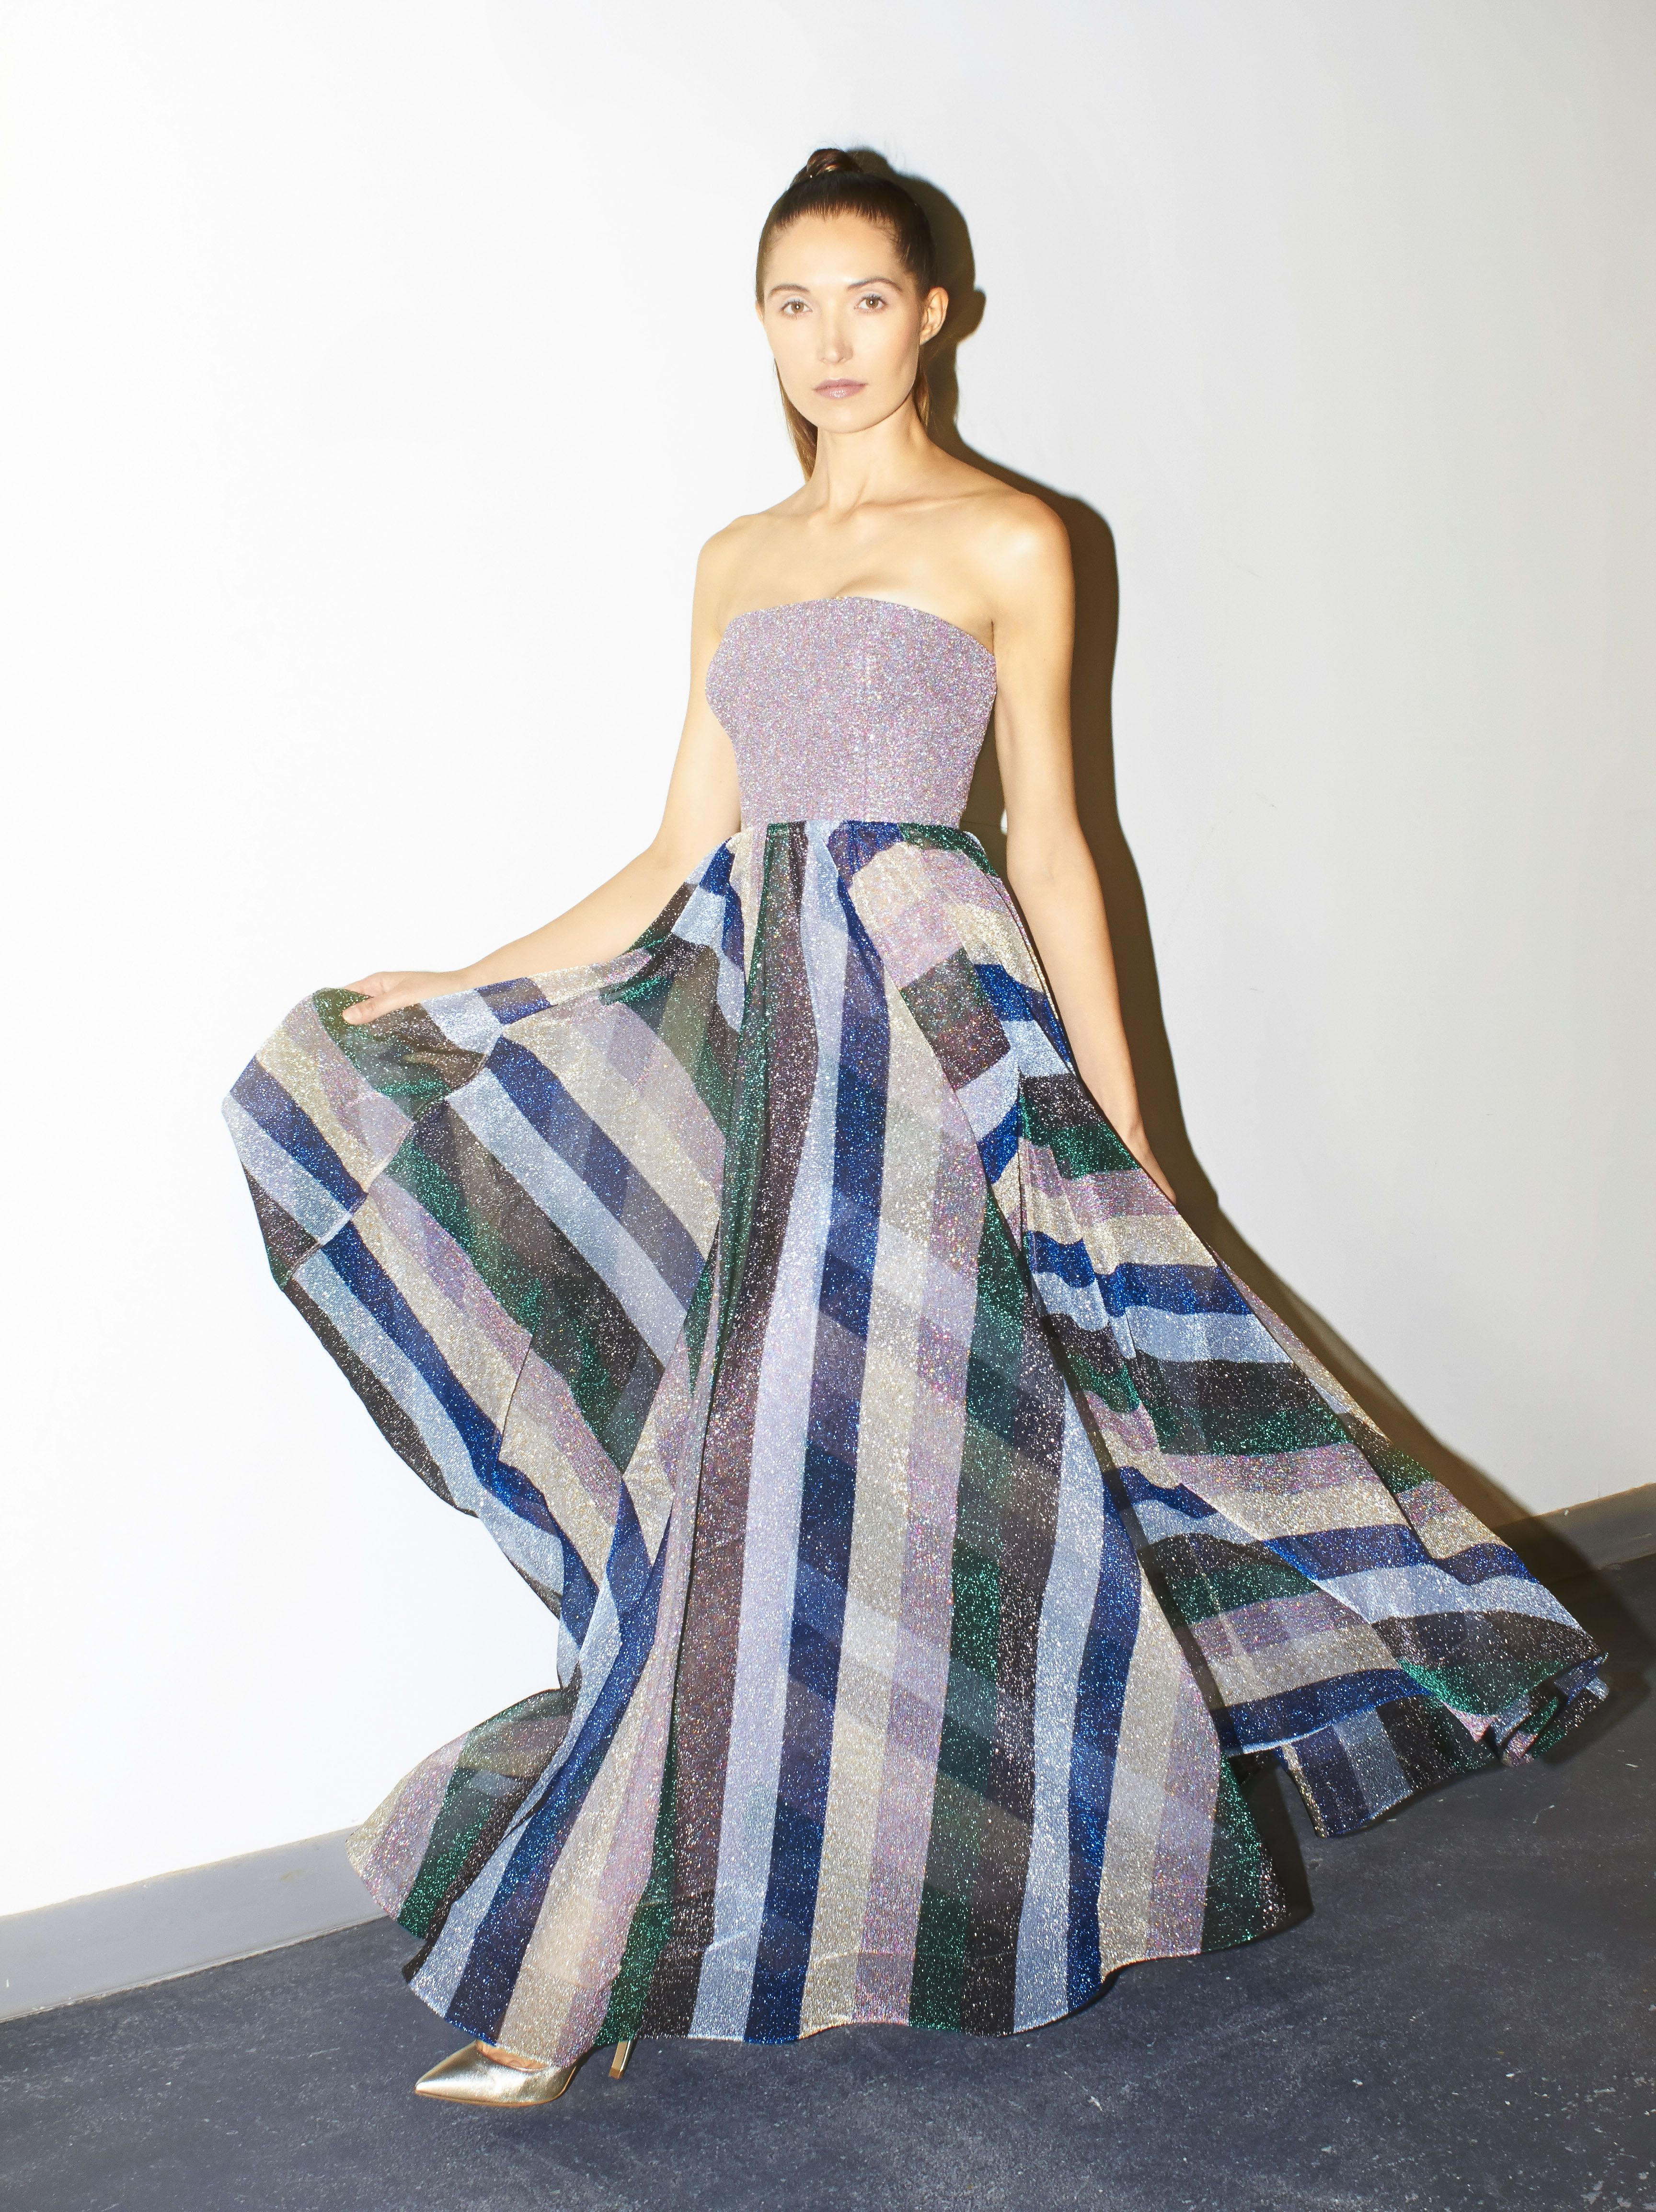 61cdb570d Evening gown from Missoni available at Shari's Place. Photo by Timothy  Hutto.